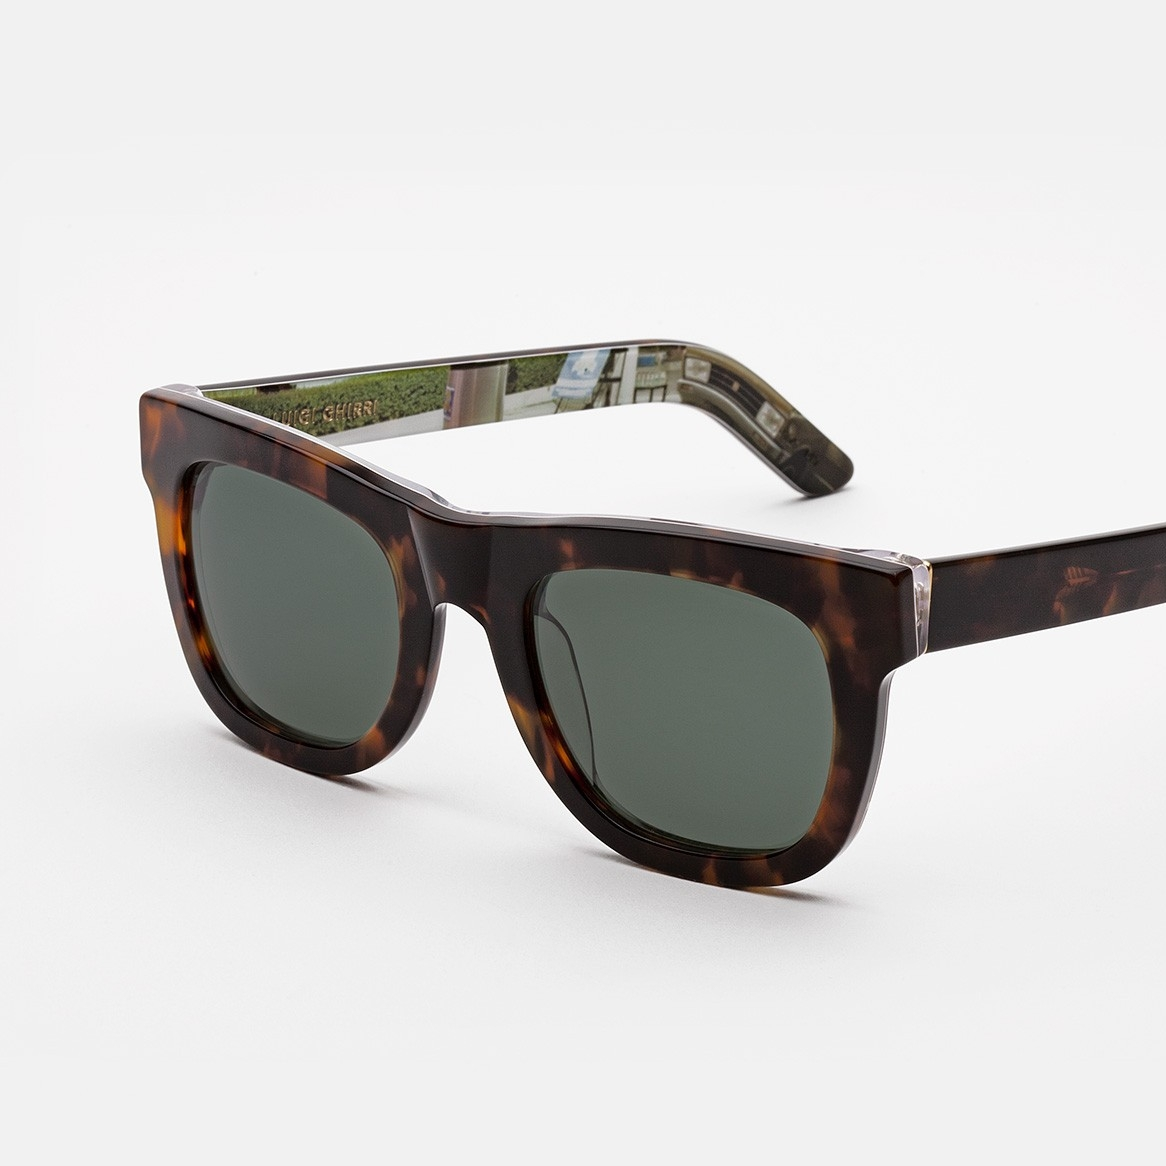 RetroSuperFuture Sunglasses